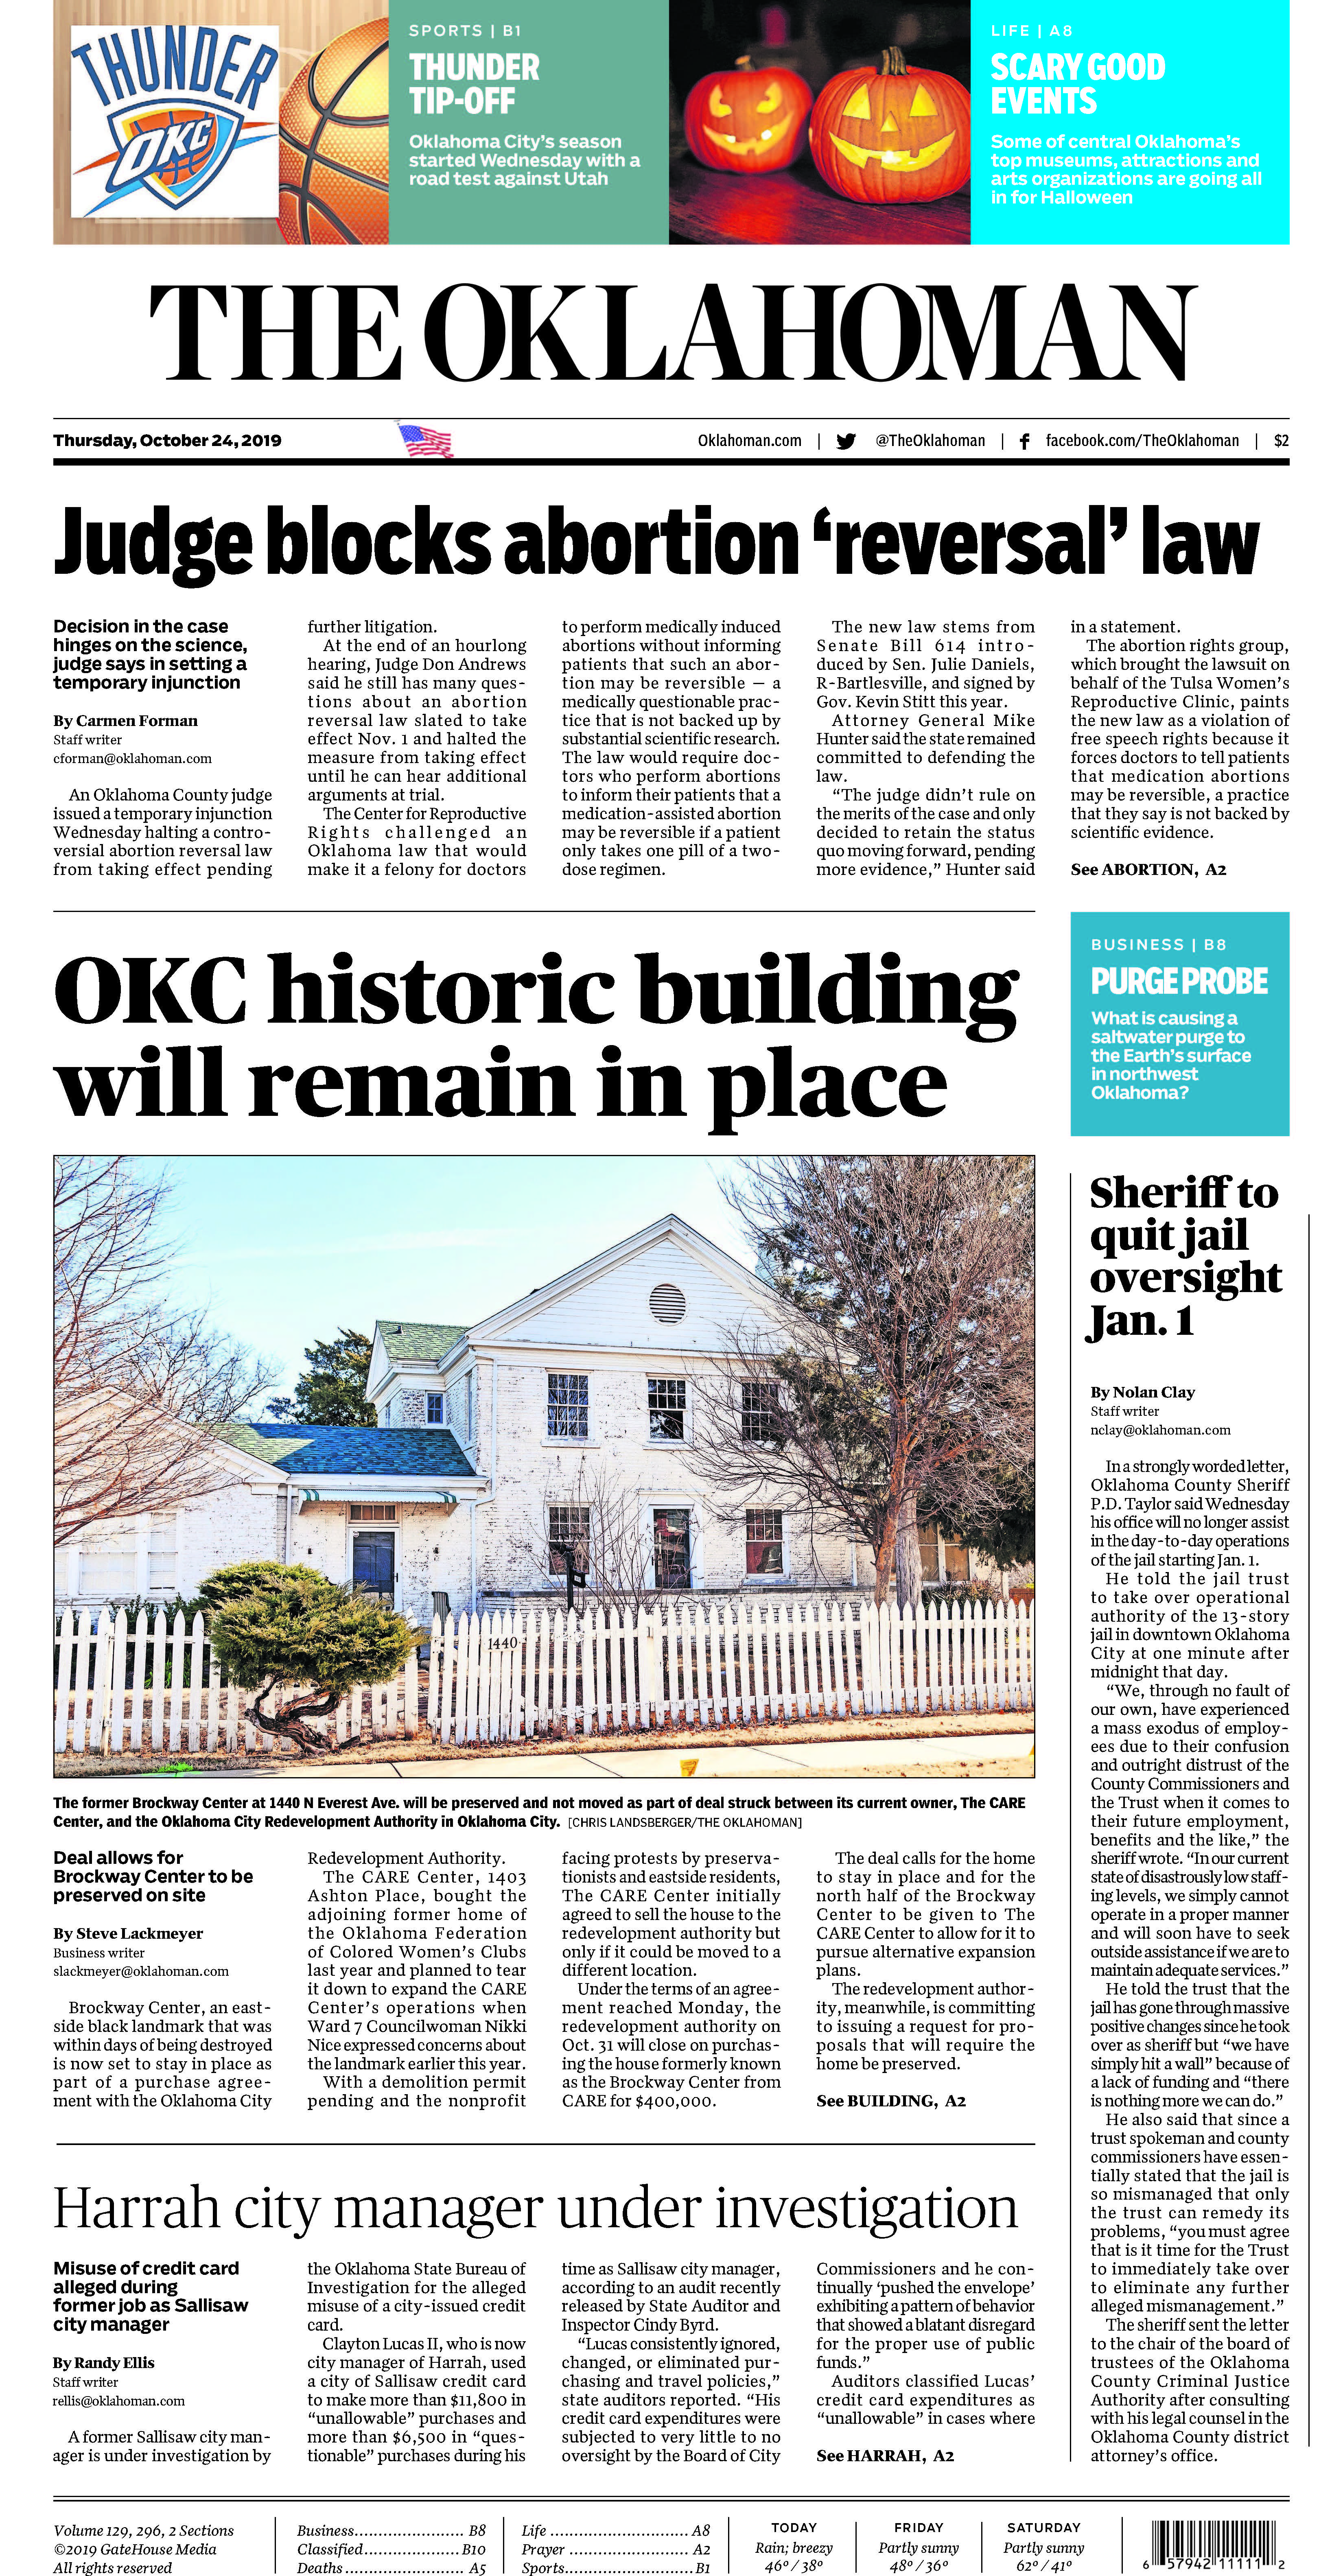 The Oklahoman News page